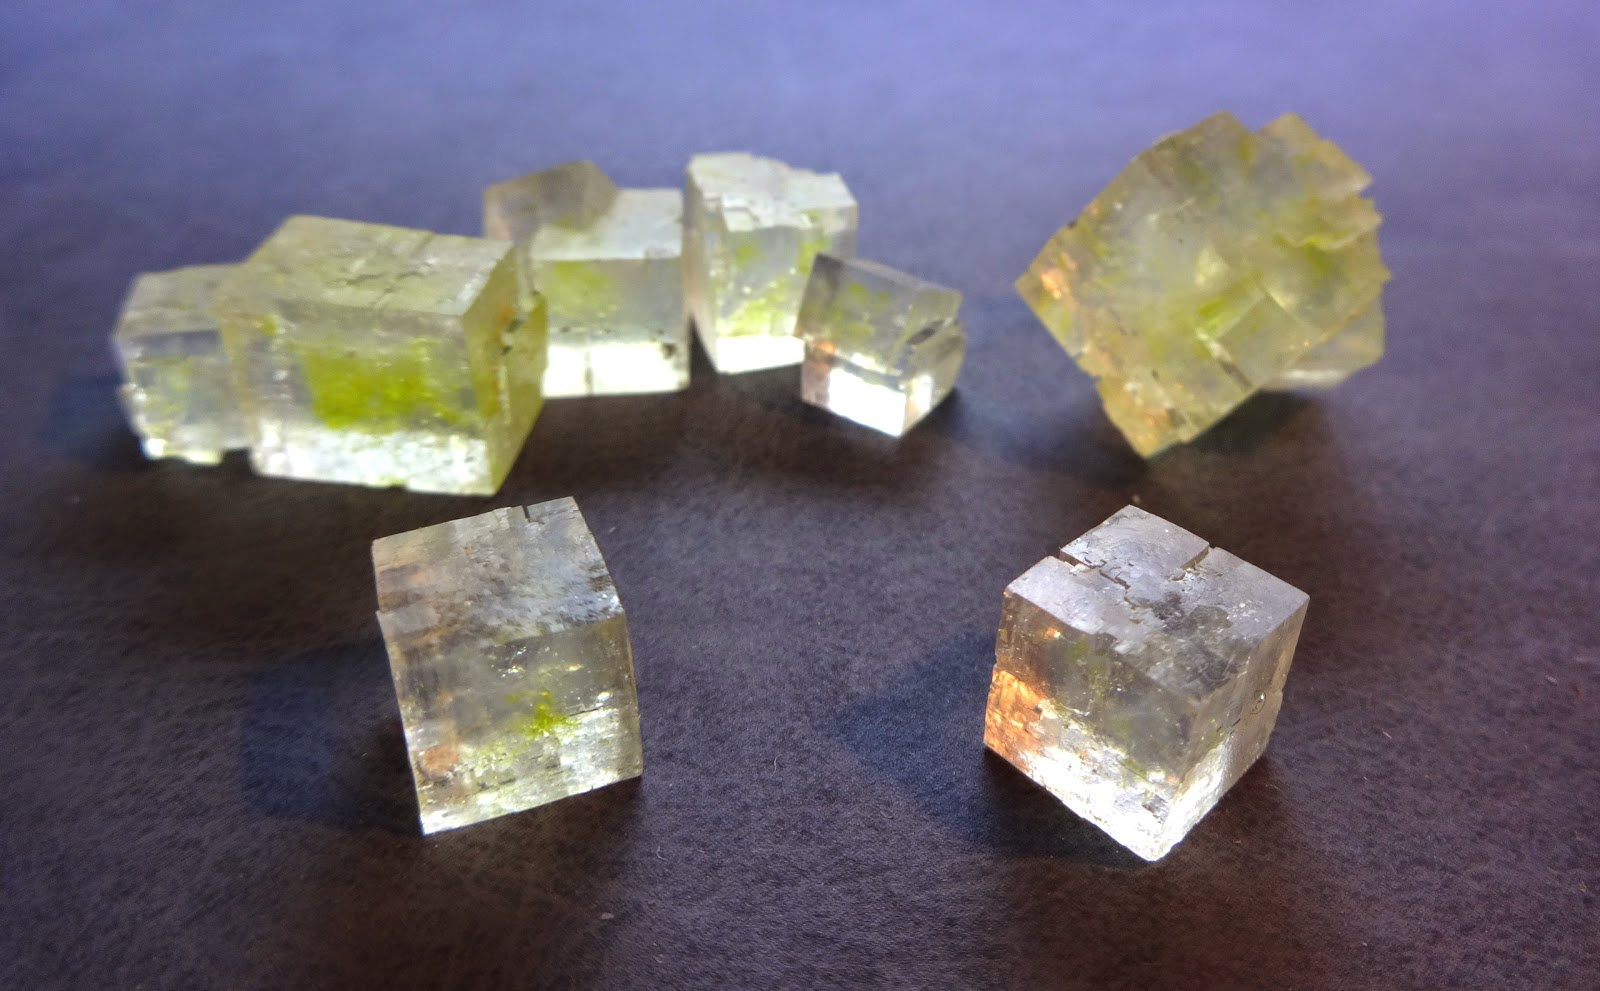 growing crystals solubility and entropy Click the links below to view some tips for growing x-ray quality crystals crystal growing tips  some crystal growing tips on the compound's solubility.